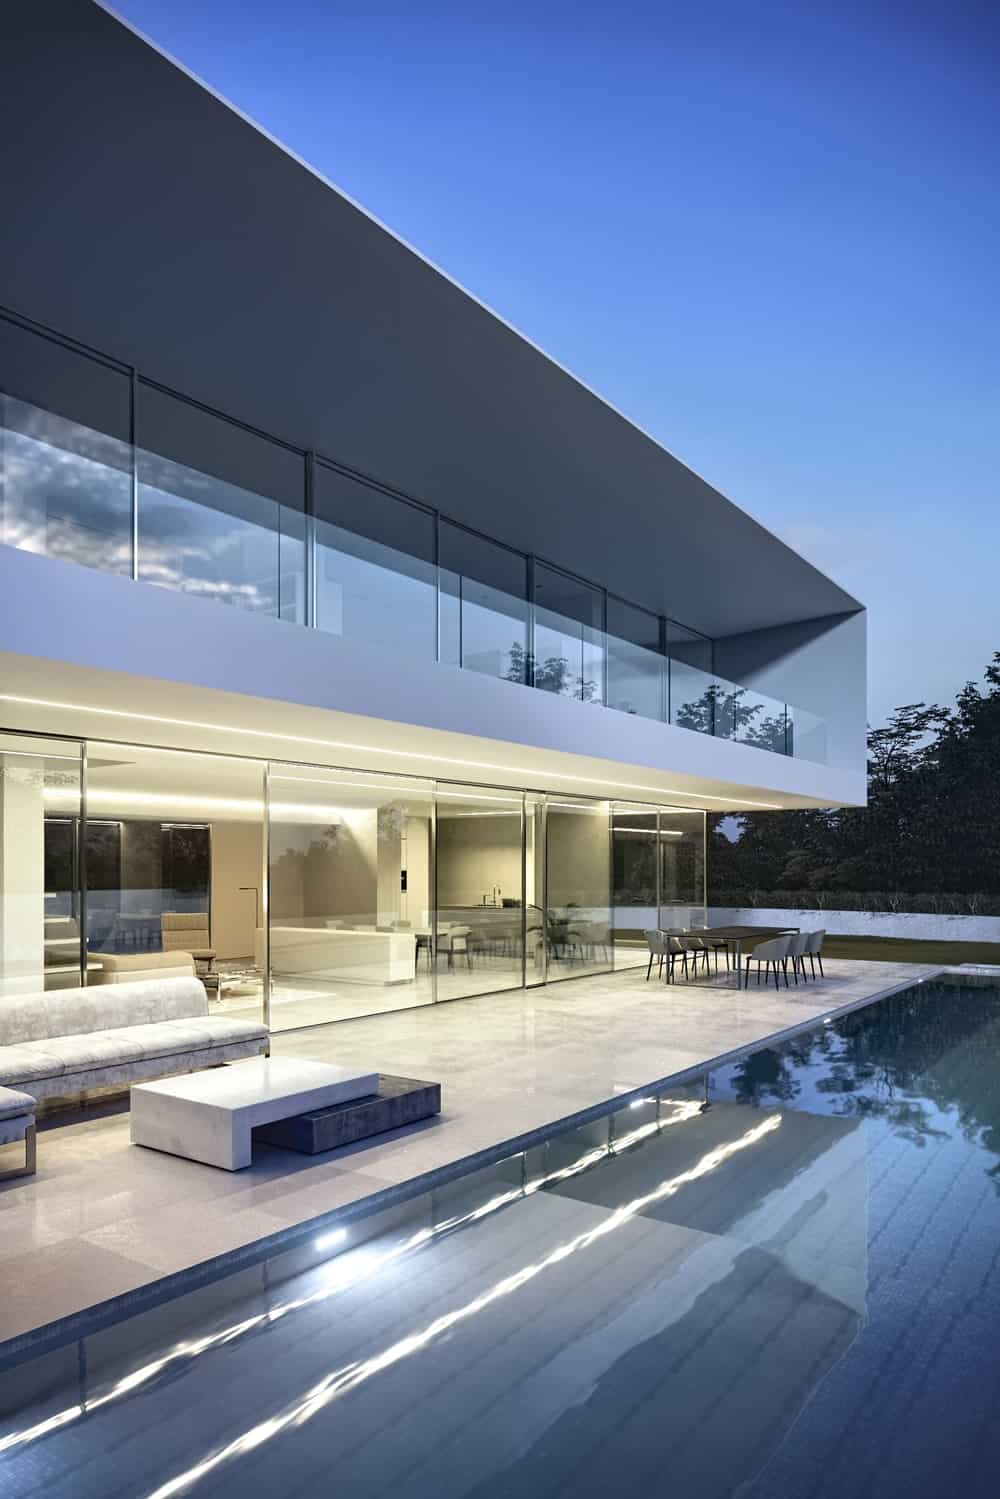 This shows the backyard pool with the patio lights on giving a warm view of the ground level interiors through glass walls.